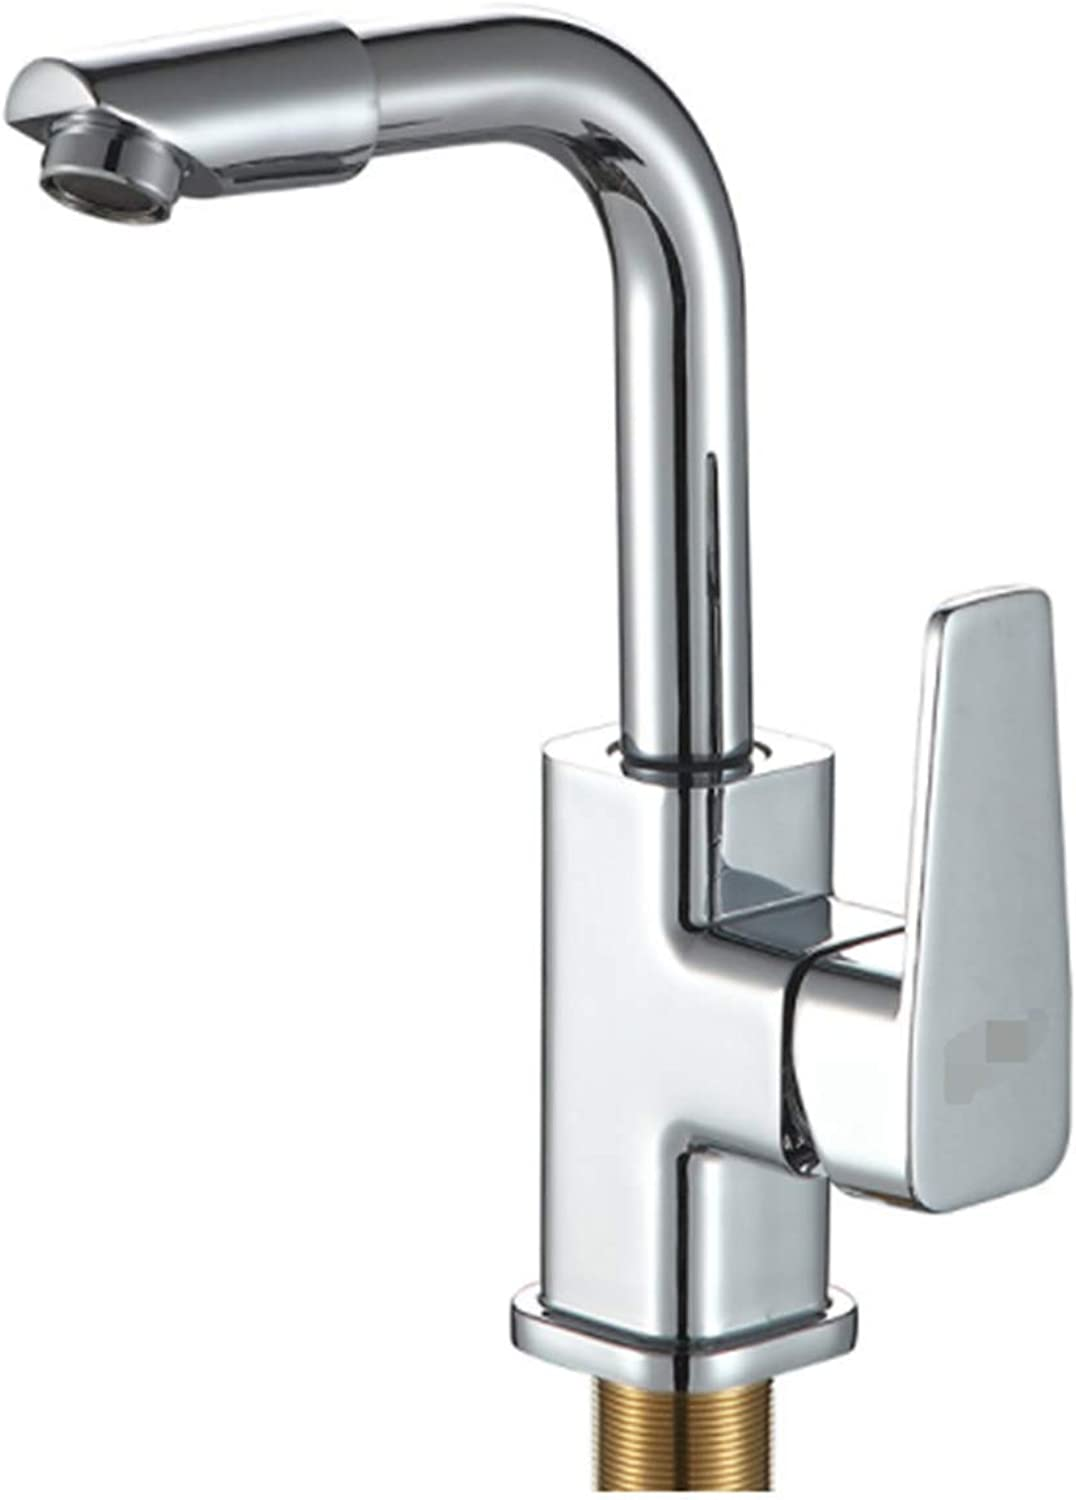 Taps Kitchen Basin Mixer Pull Out Mixer360 redation Spout Modern Kitchen Mixer Tap Brass Polished Single Handle Wash Basin Faucet for Bathroom Deck Mounted